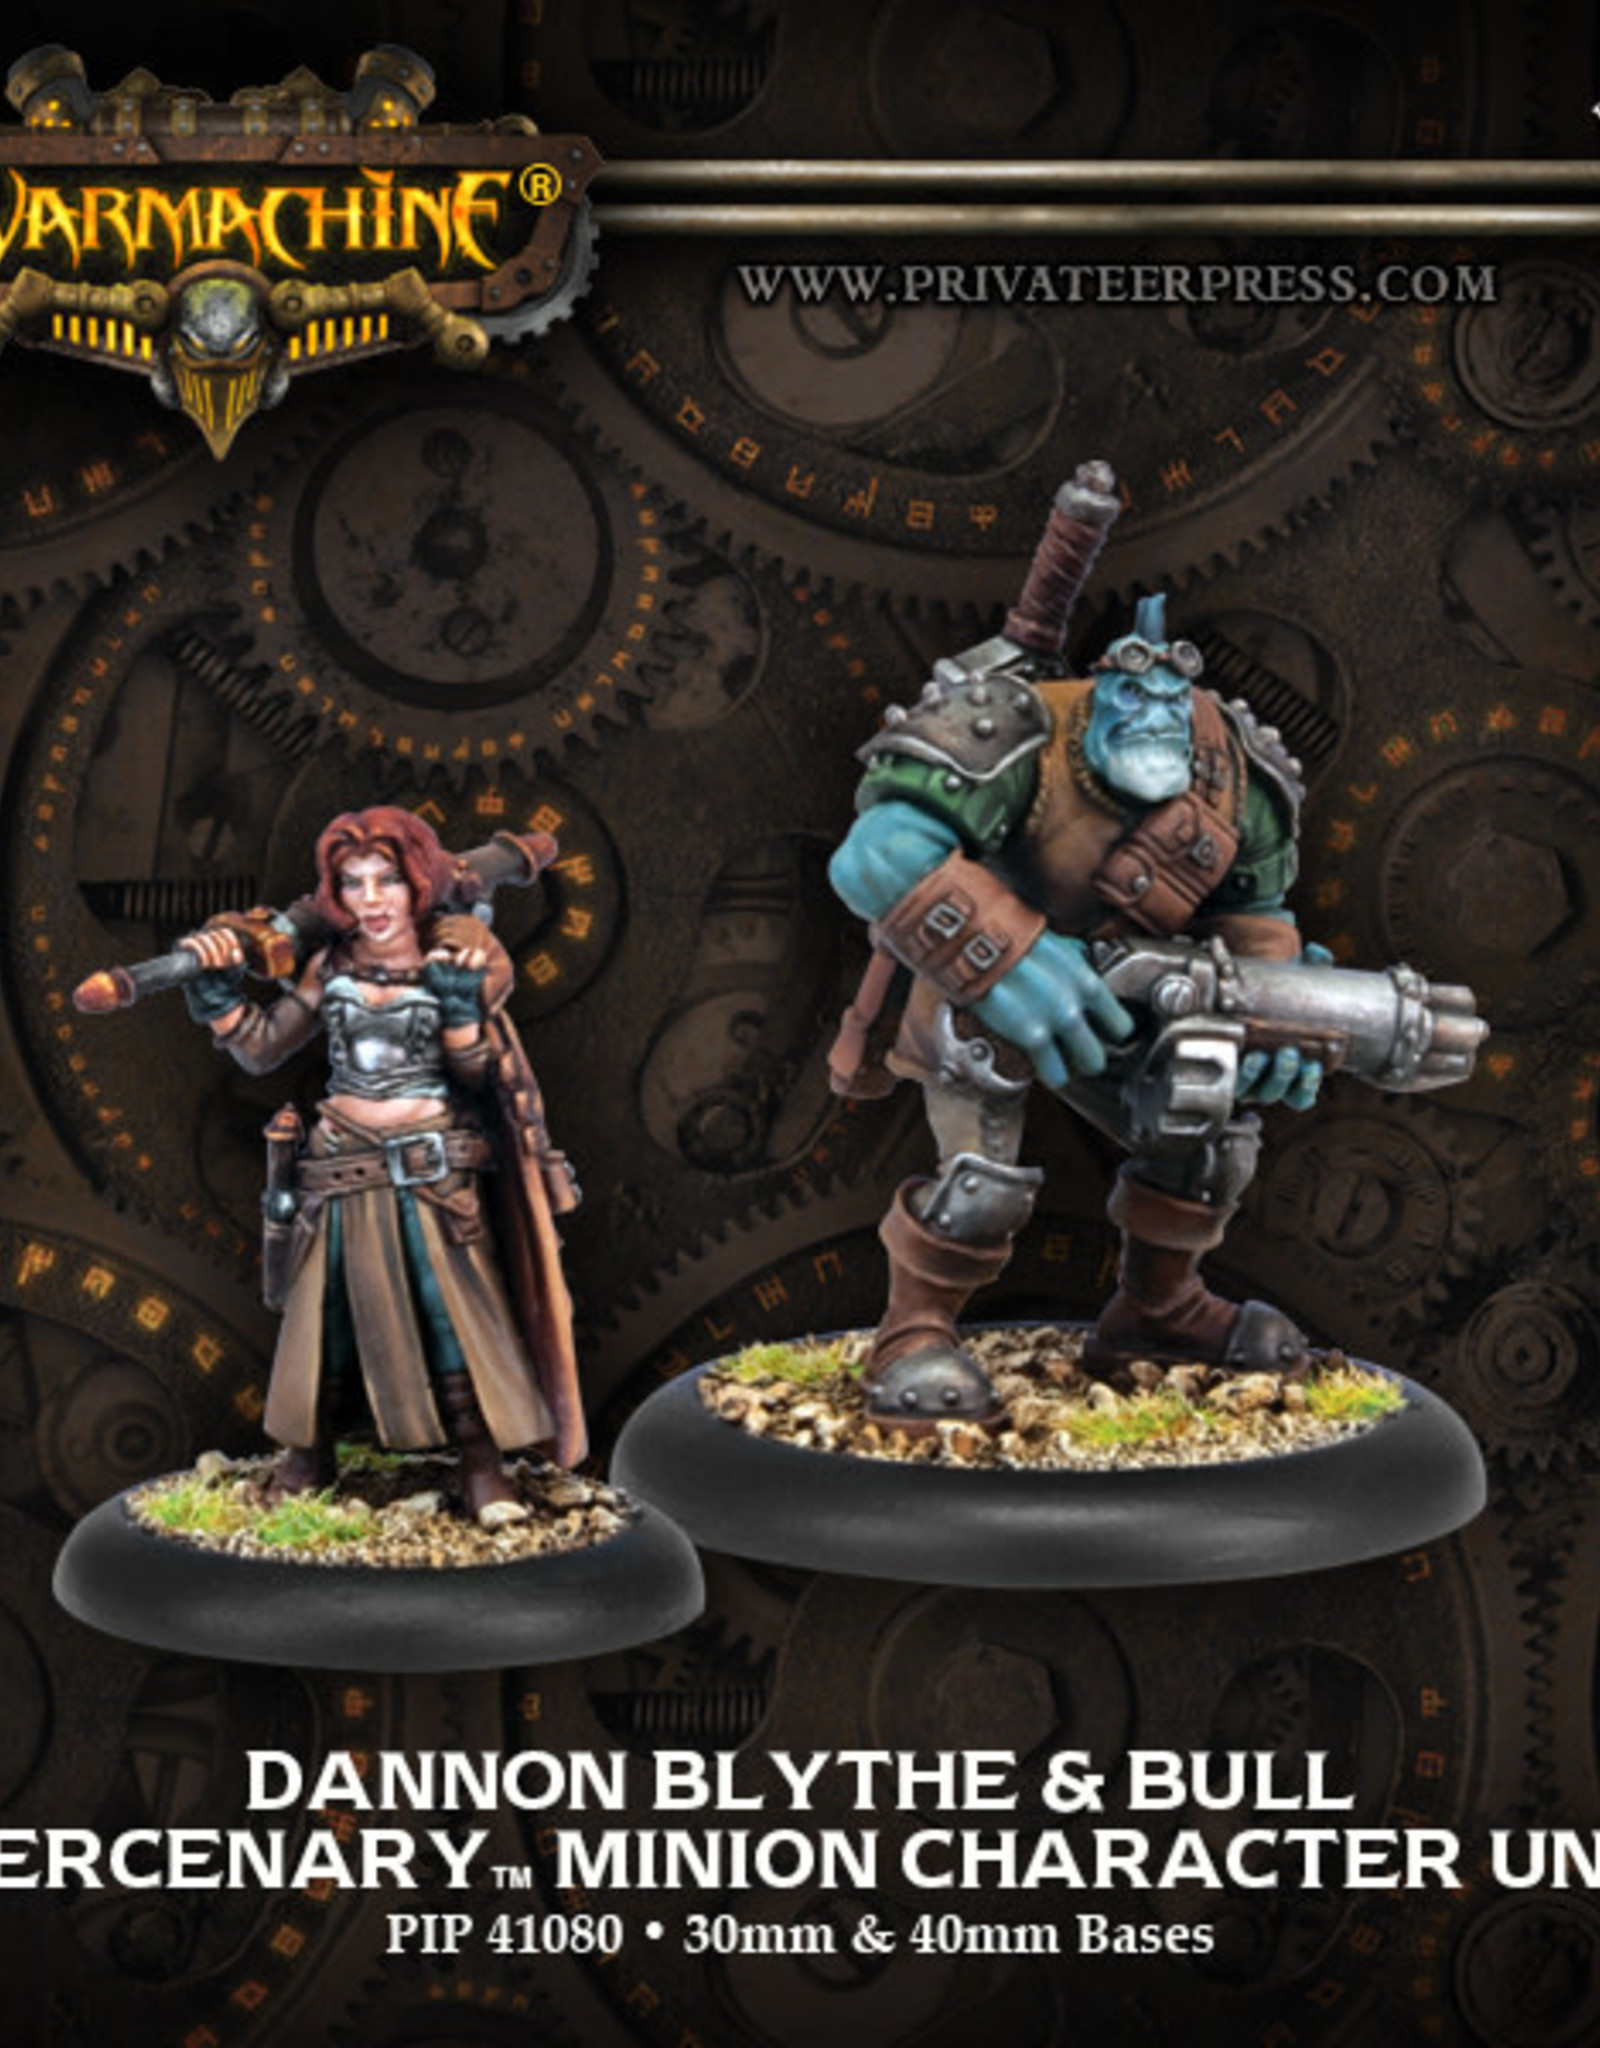 Warmachine Mercenaries - Dannon Blythe & Bull